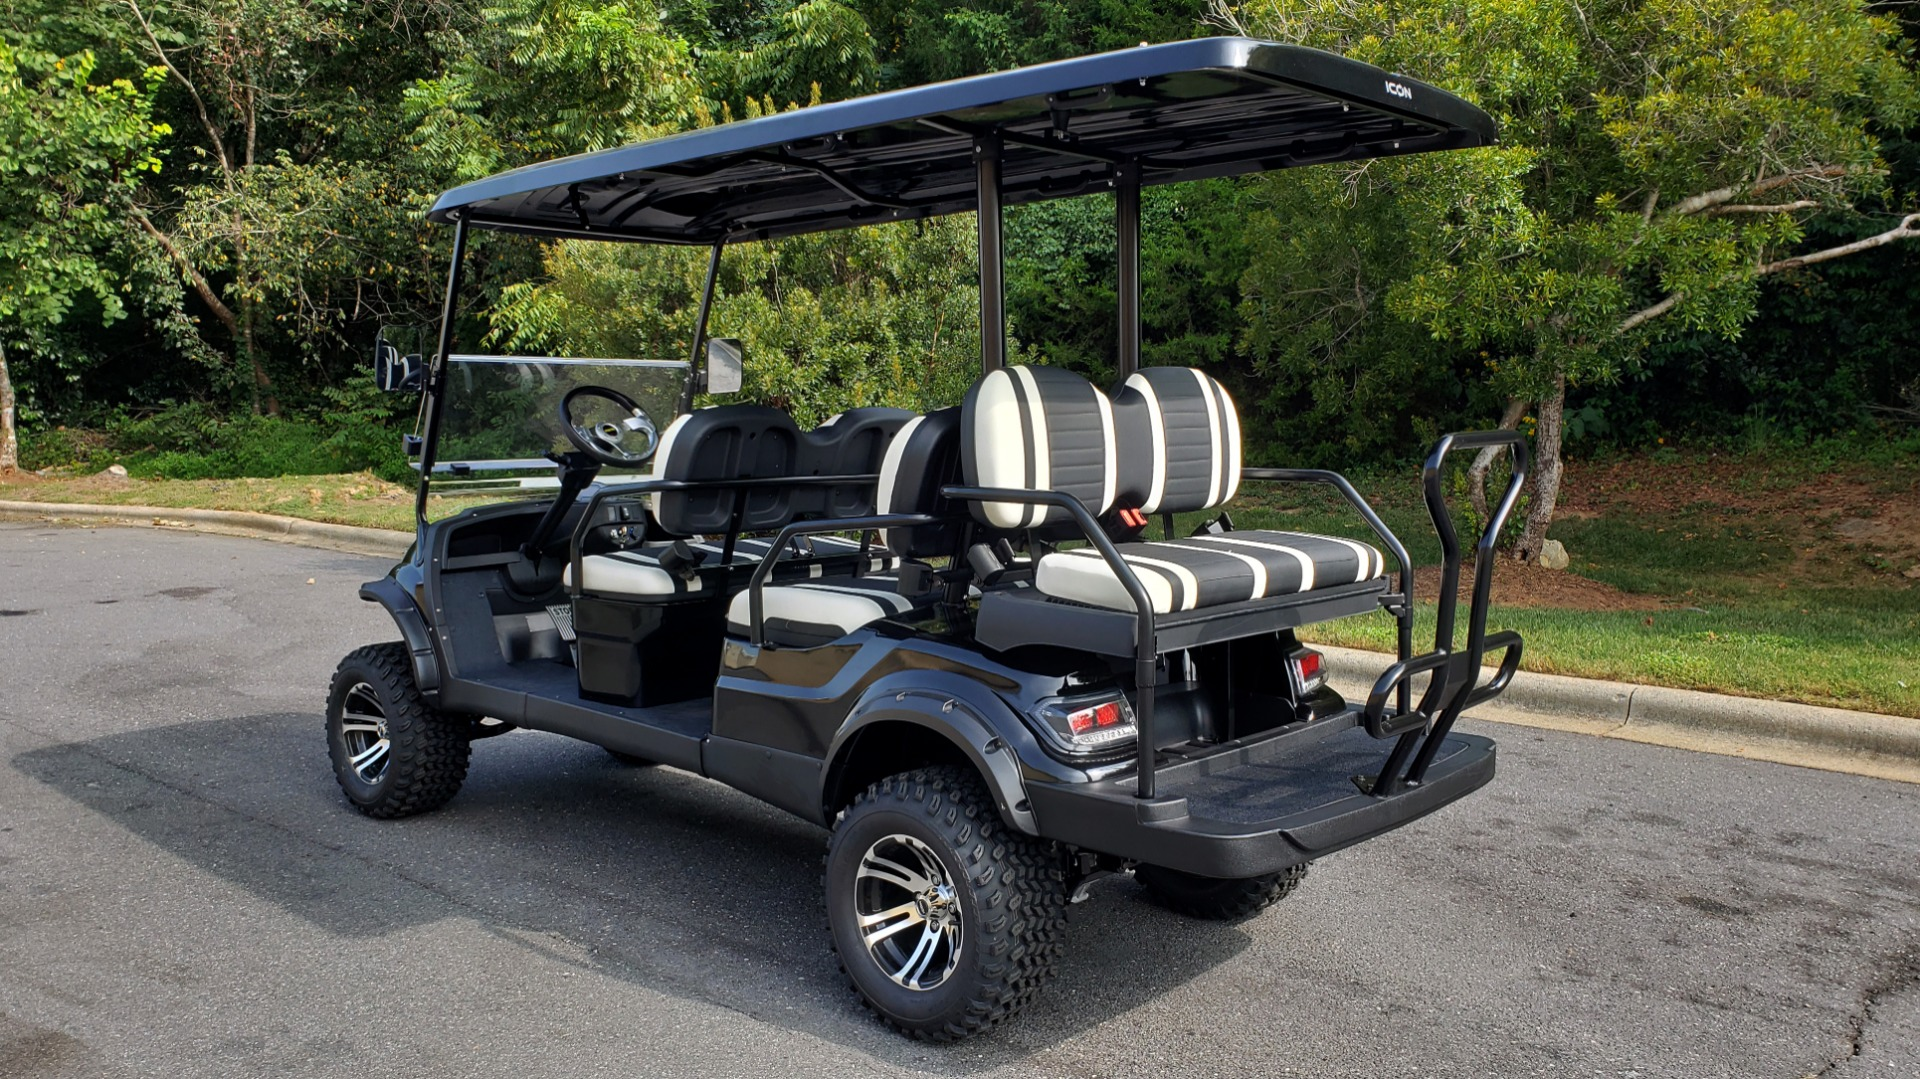 Used 2020 ICON I60L ELECTRIC CAR 3-ROW/6-PASSENGER/LIFTED for sale $10,995 at Formula Imports in Charlotte NC 28227 3